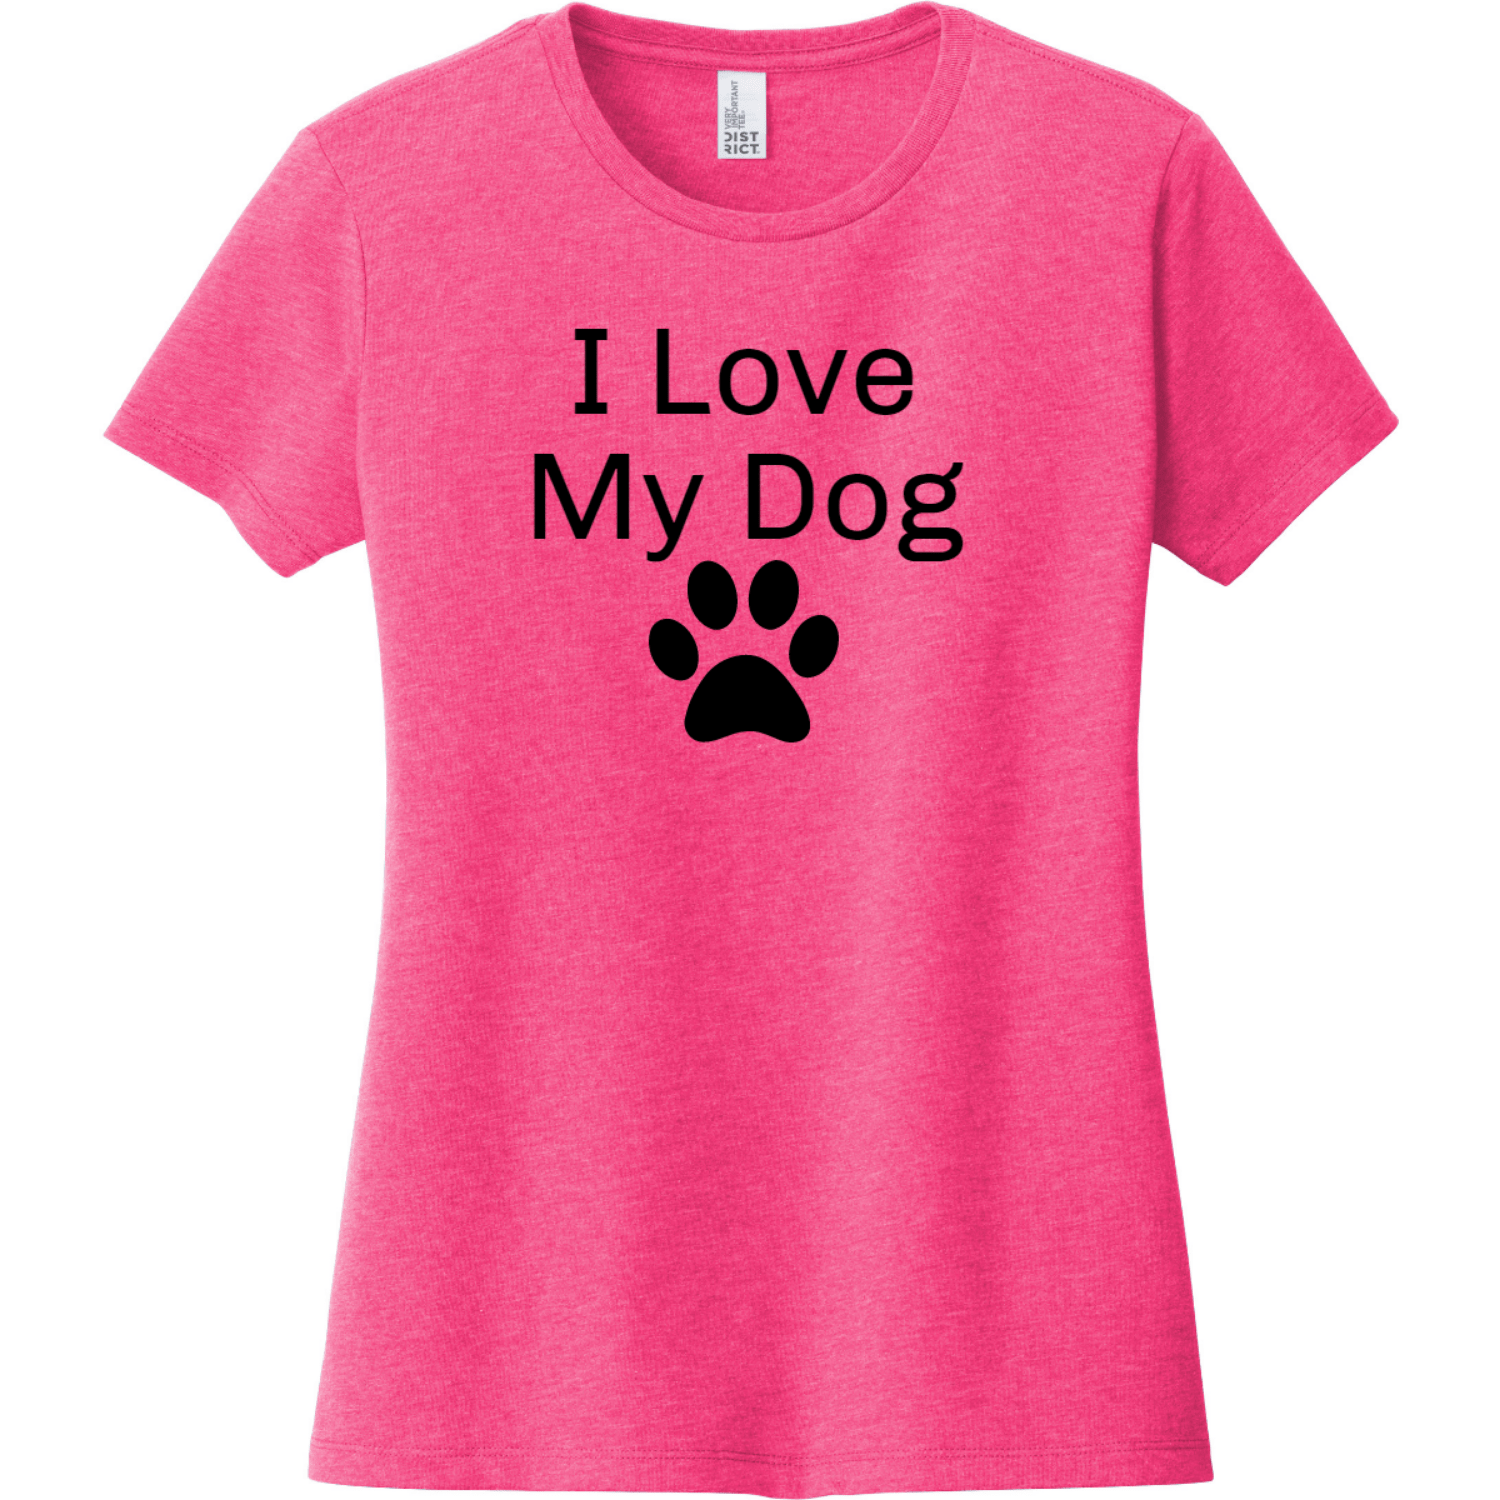 I Love My Dog Women's T-Shirt Fuchsia Frost District Women's Very Important Tee DT6002